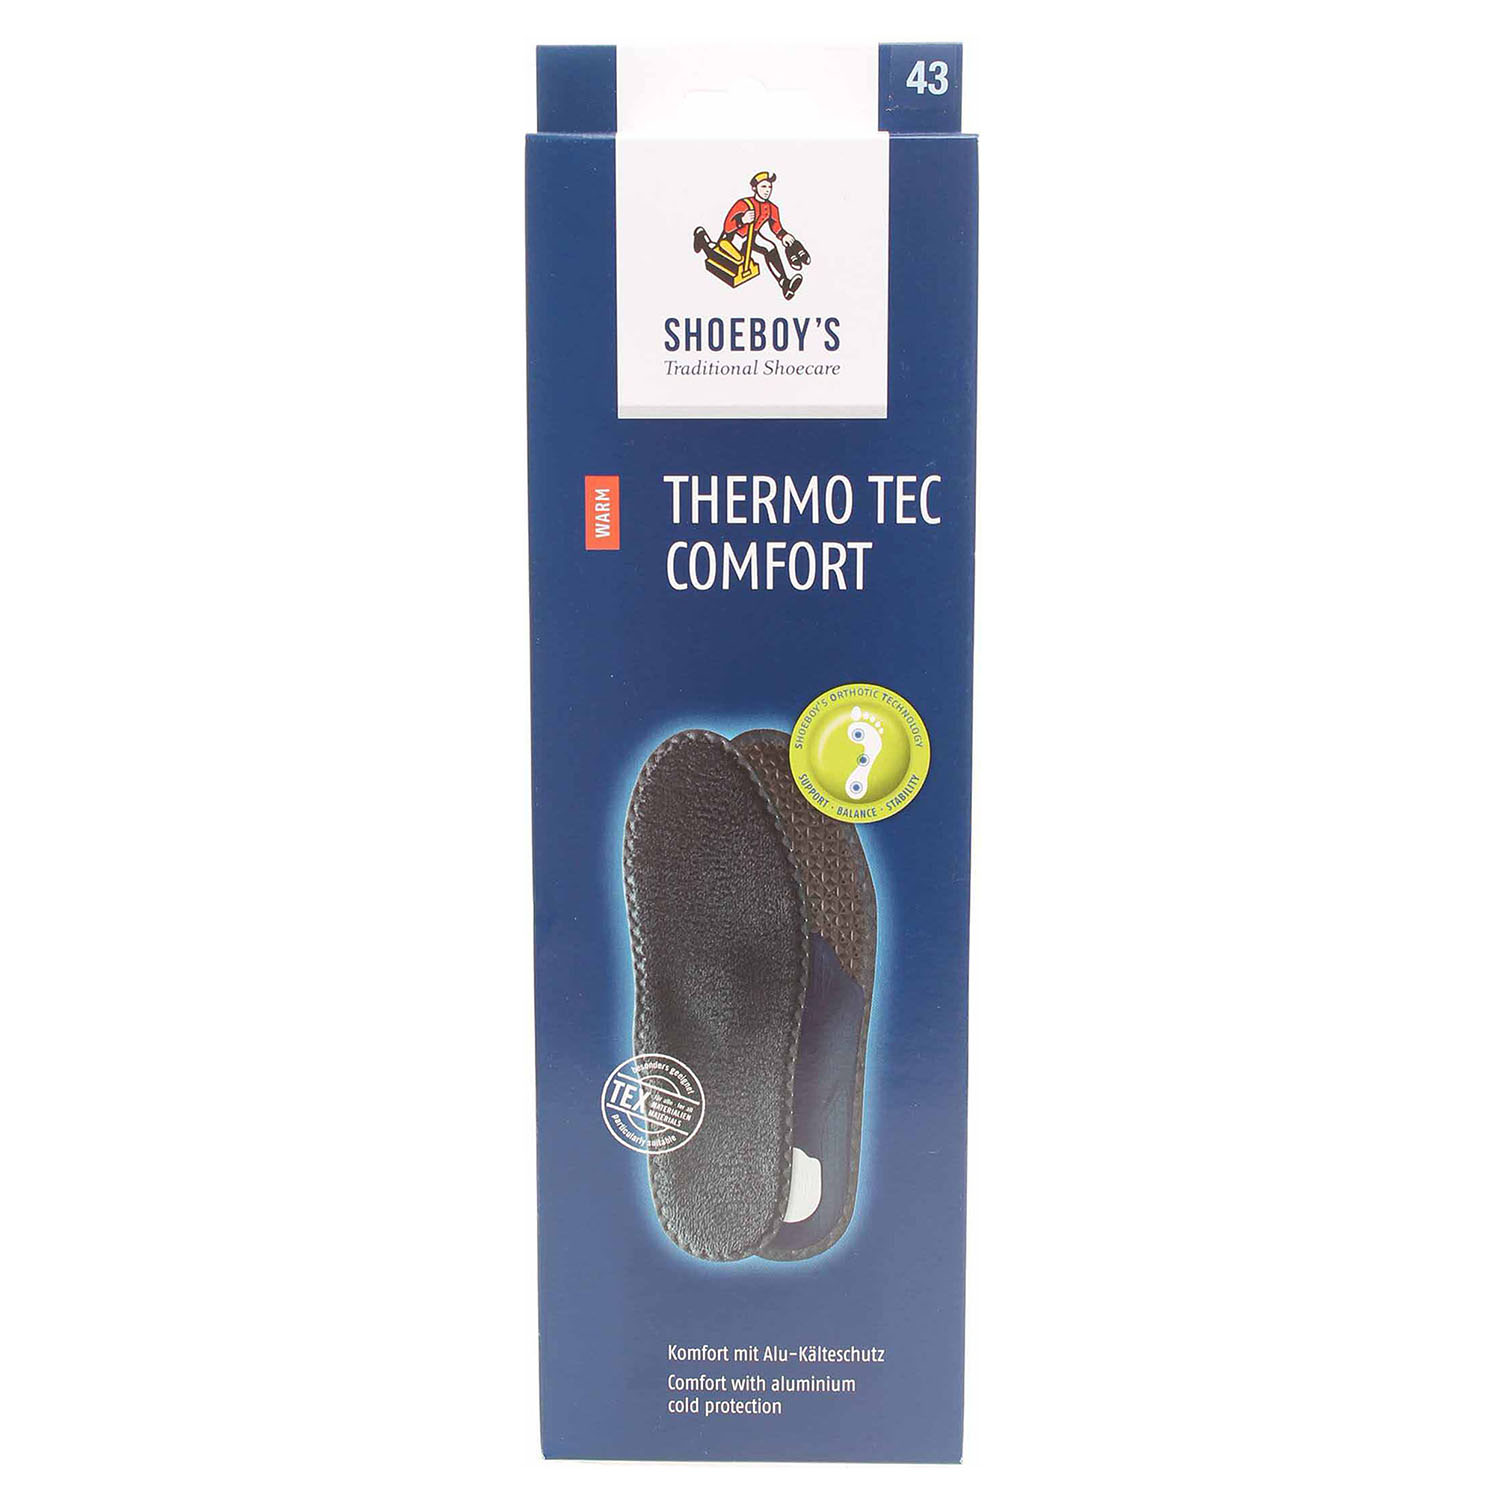 Stélky Shoeboy´s Thermo Tec Comfort